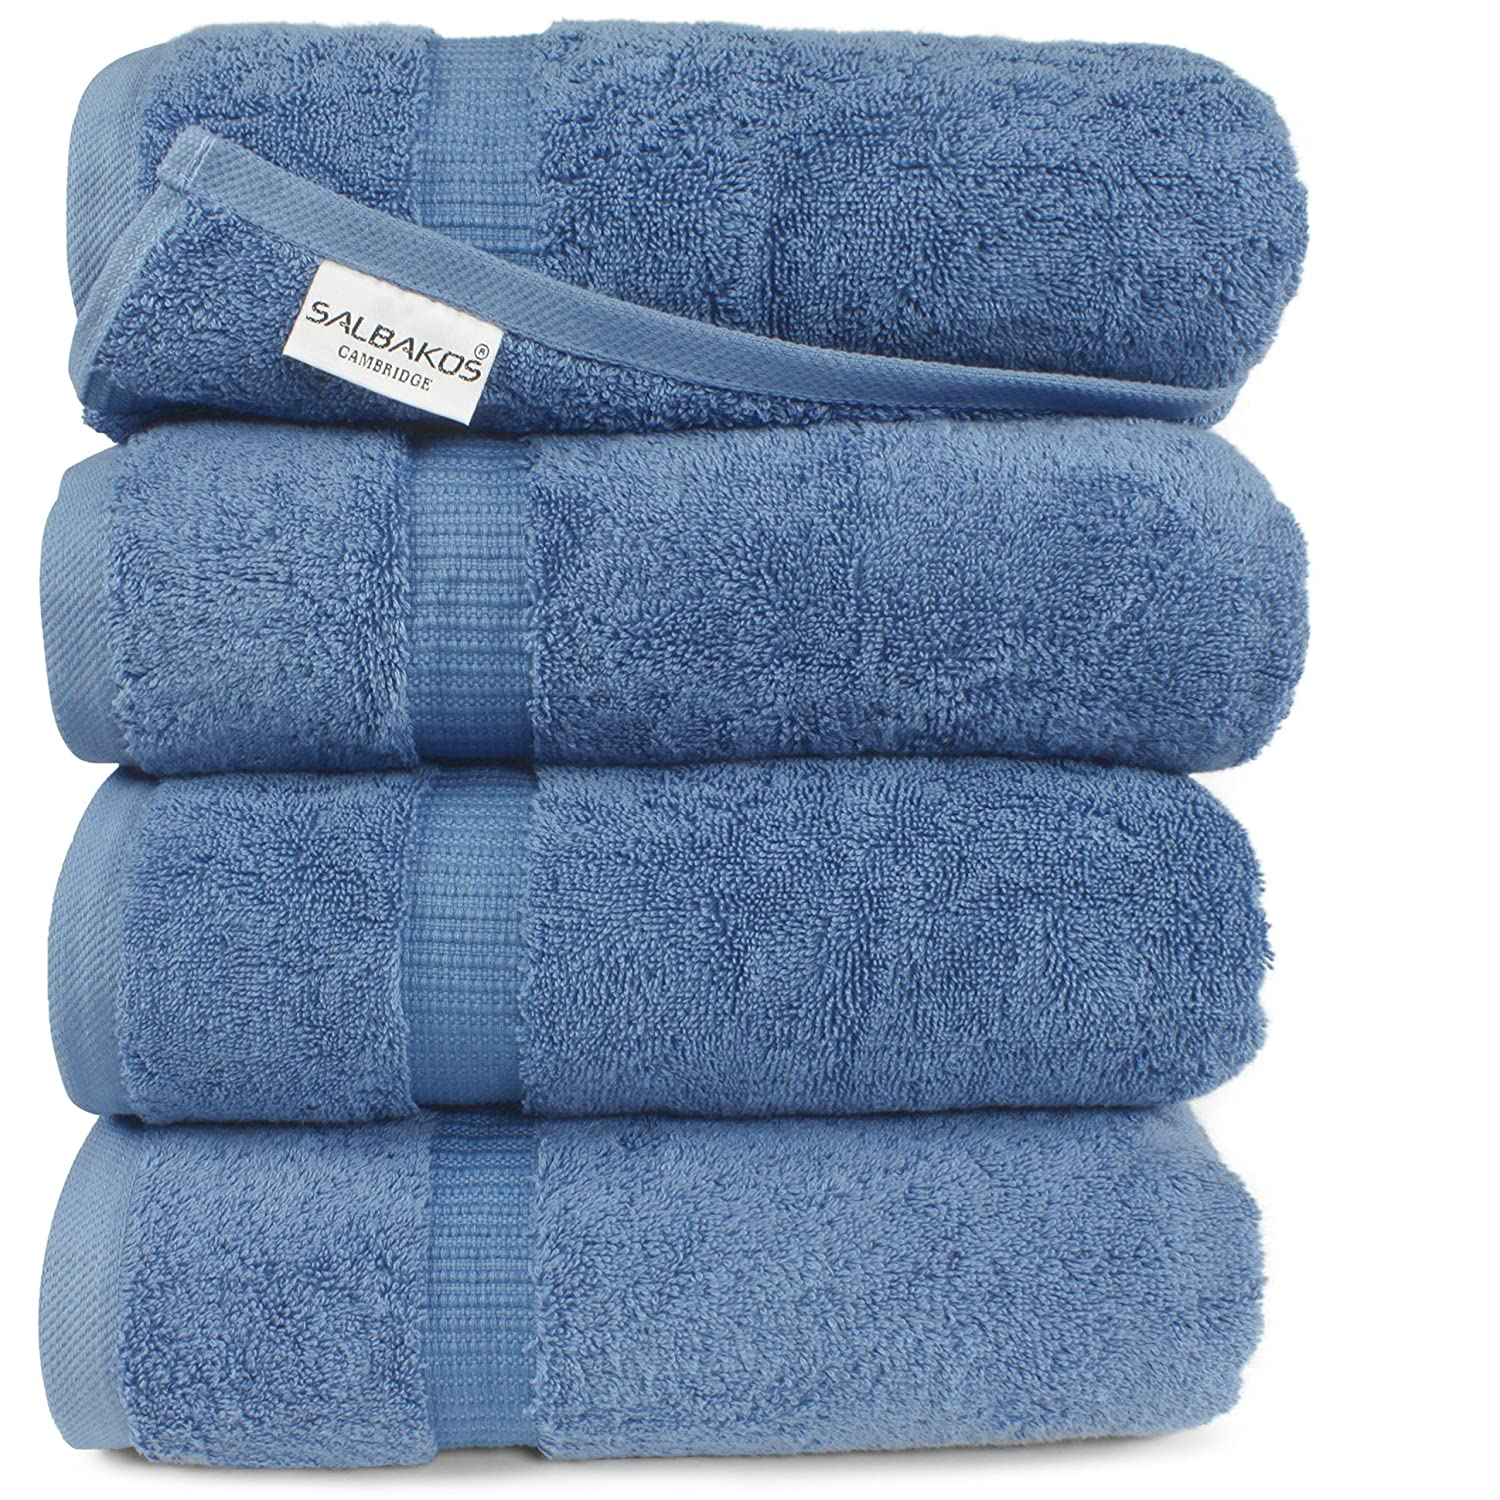 Amazon.com: SALBAKOS Luxury Hotel & Spa Turkish Cotton 4-Piece Eco ...